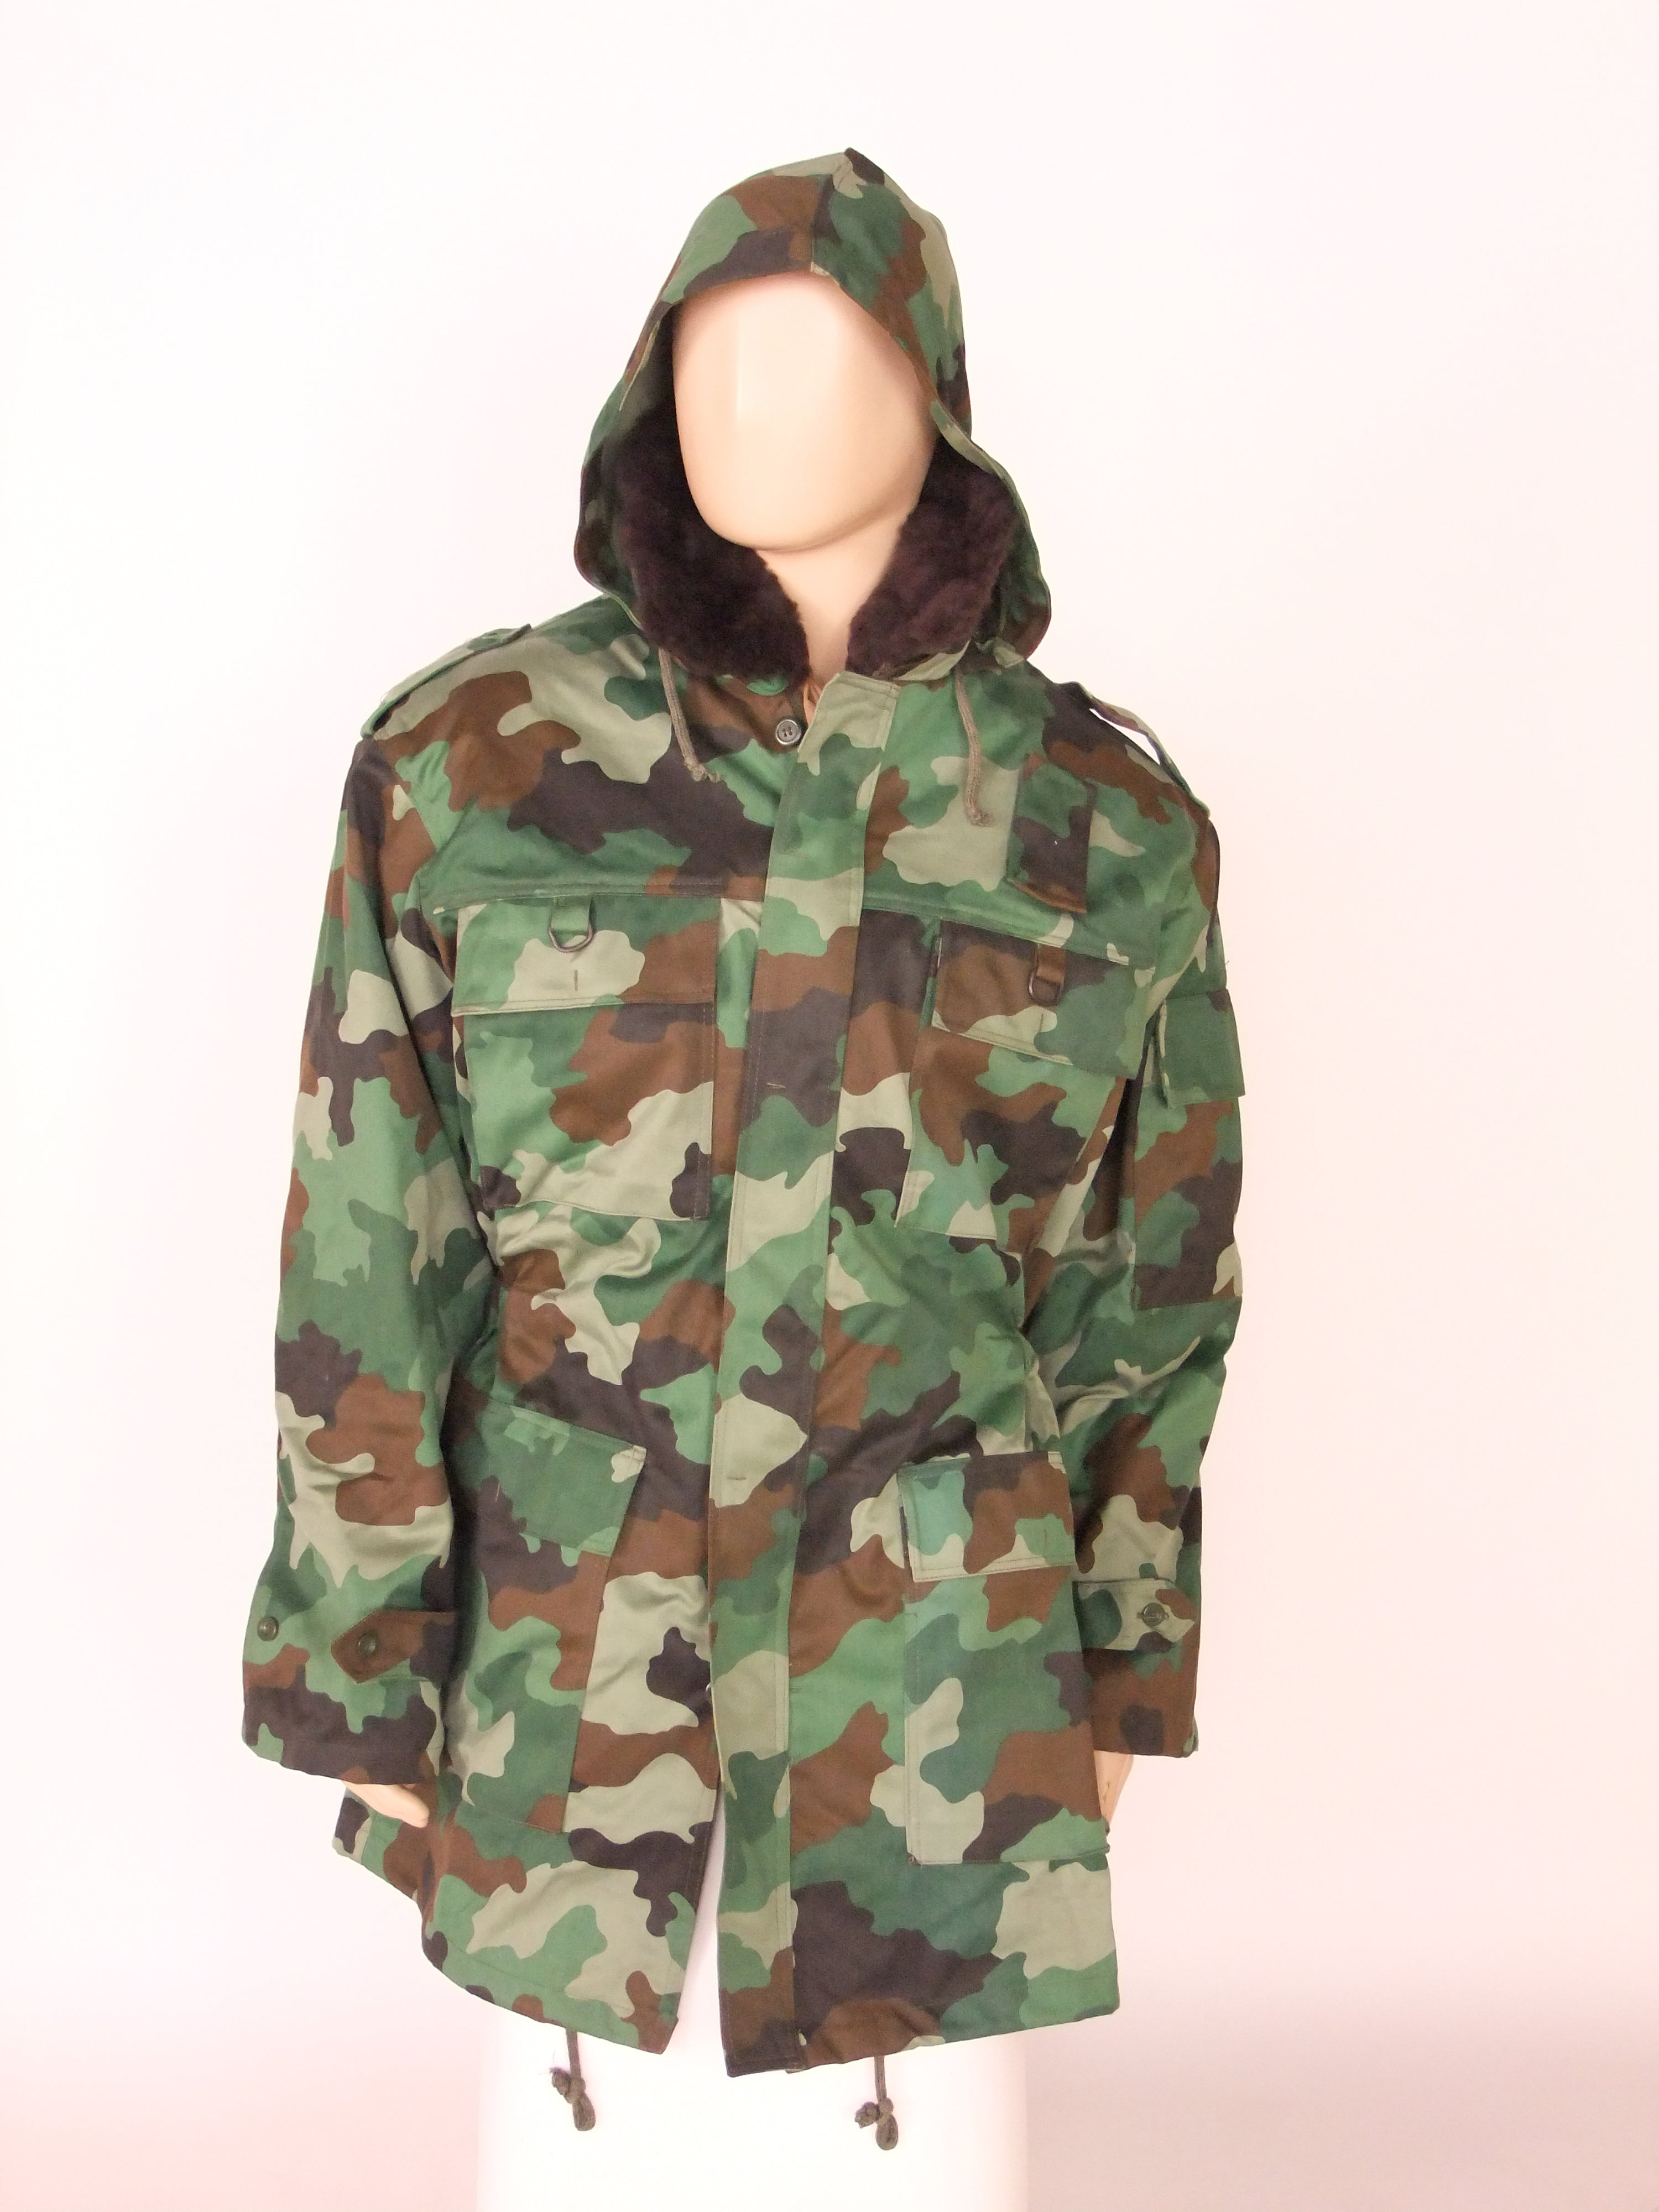 Serbian camouflage parka